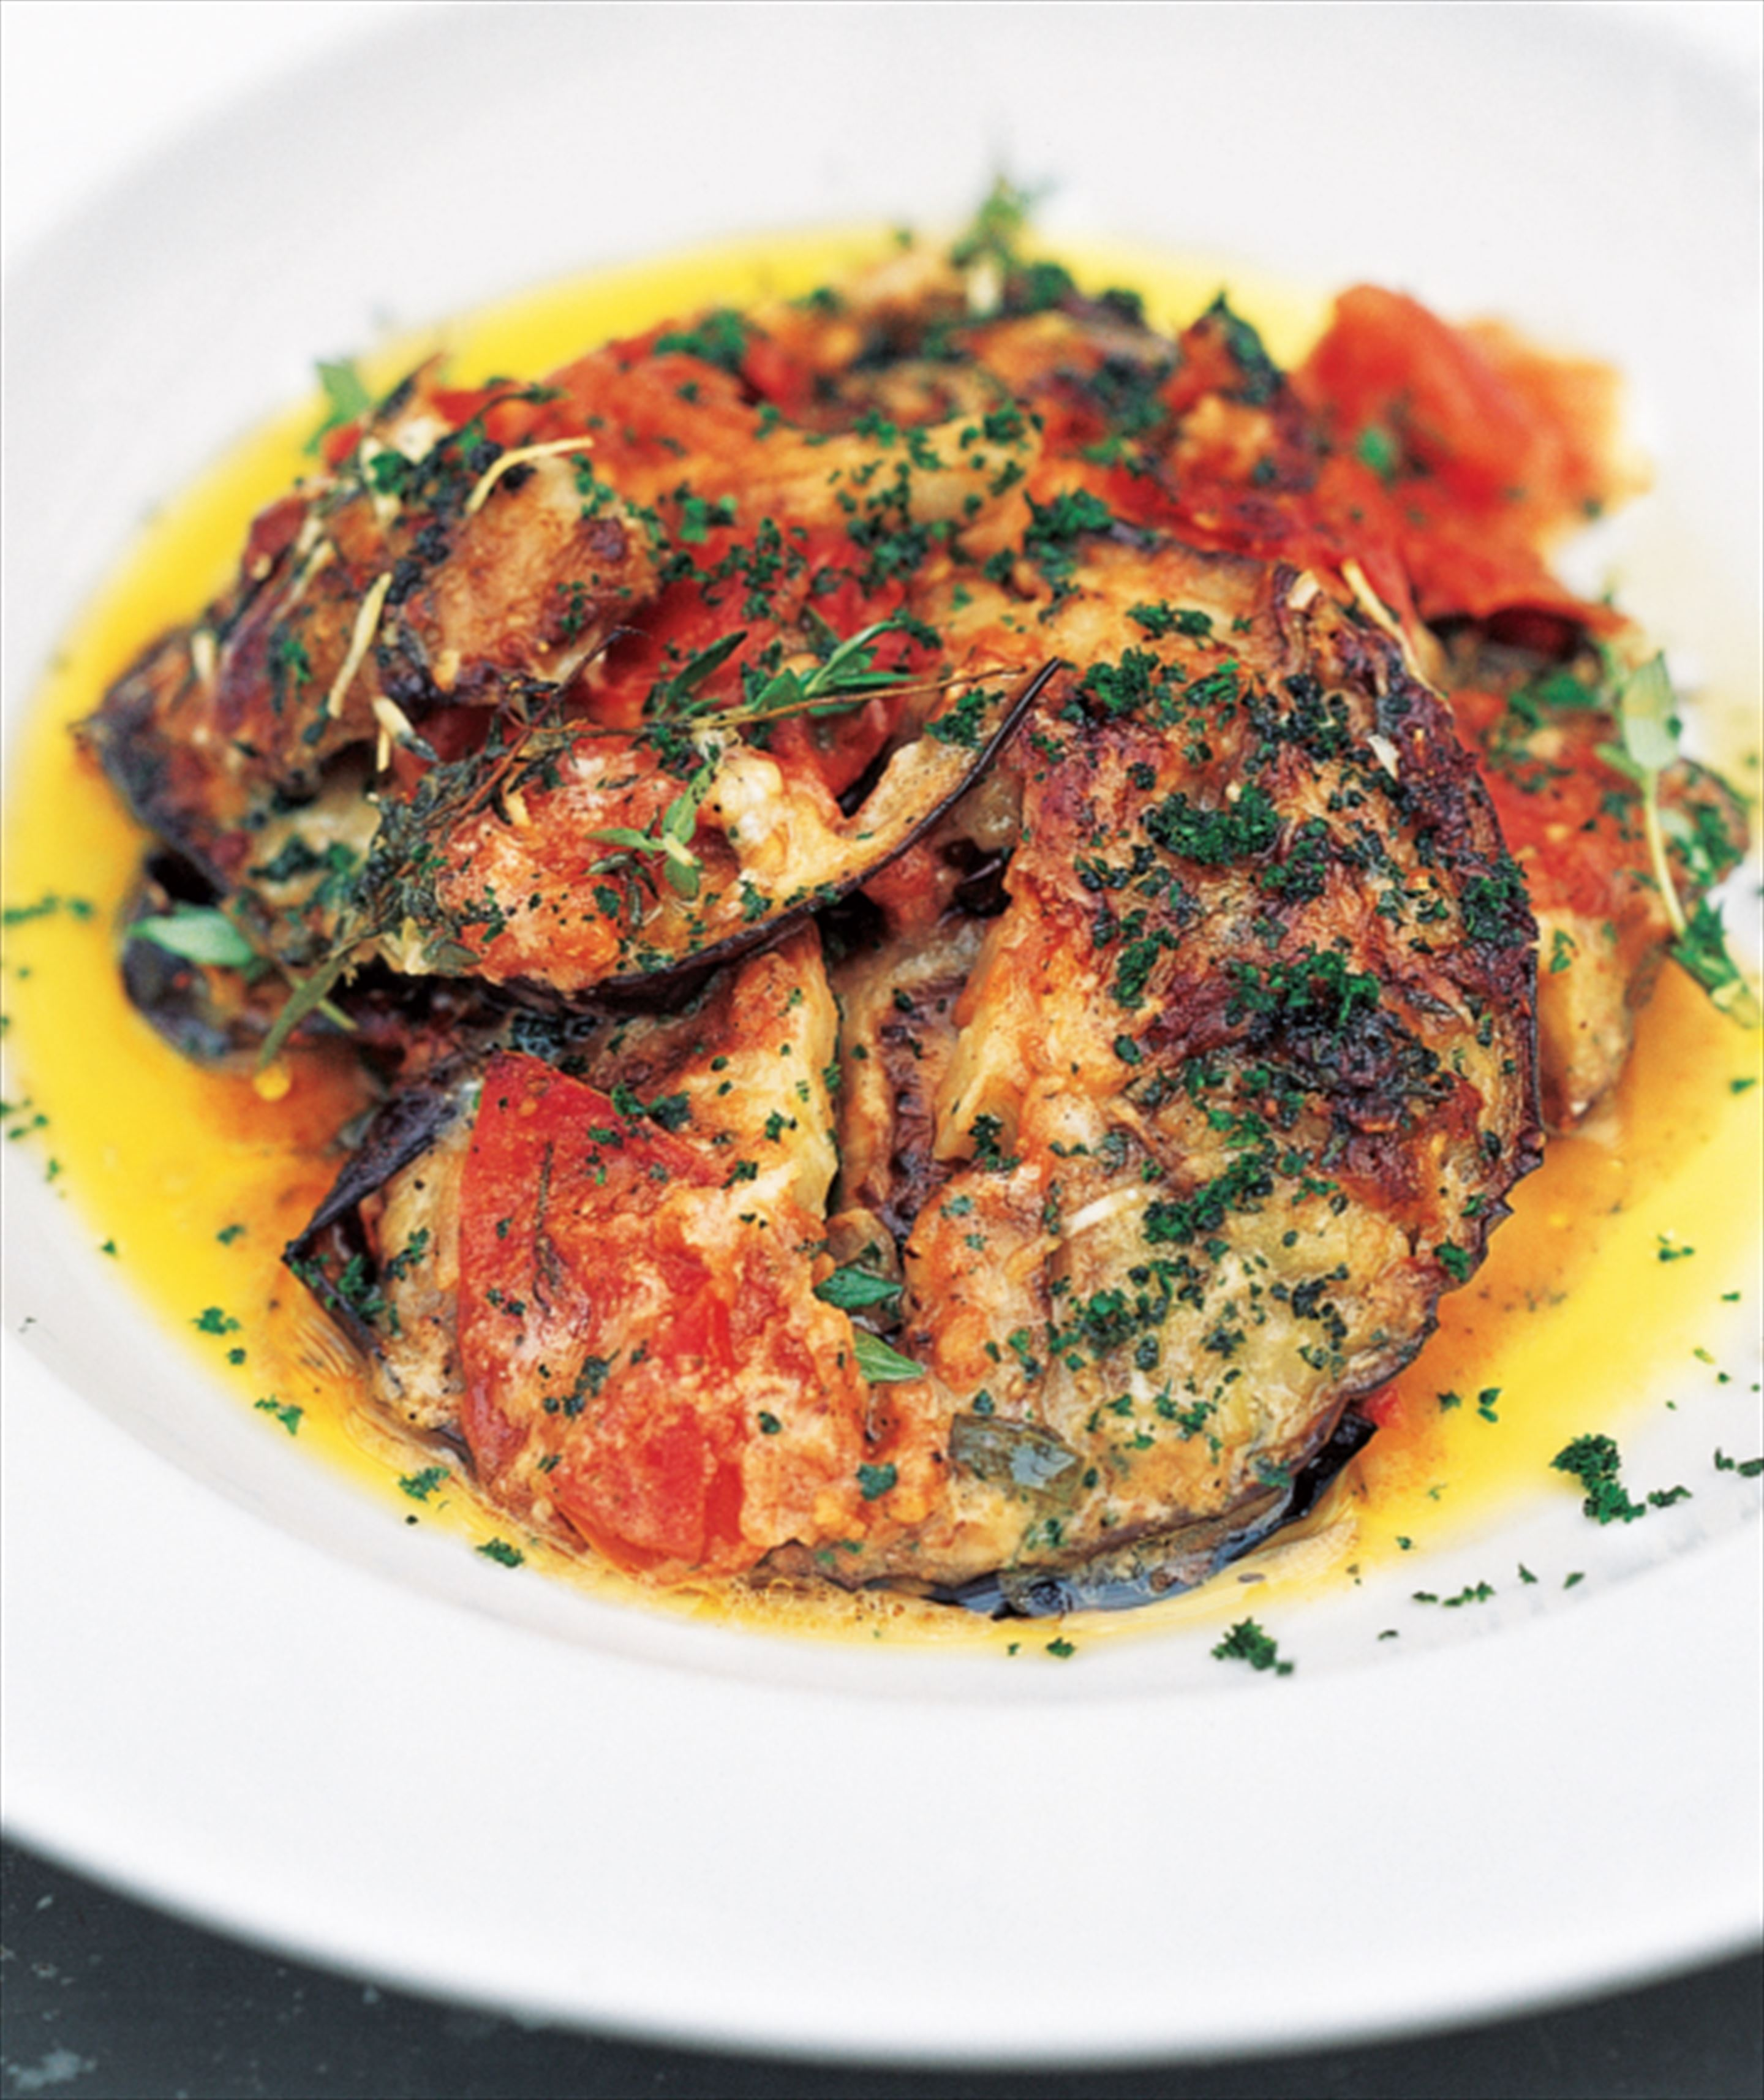 Baked aubergines with tomatoes, tarragon and crème fraîche